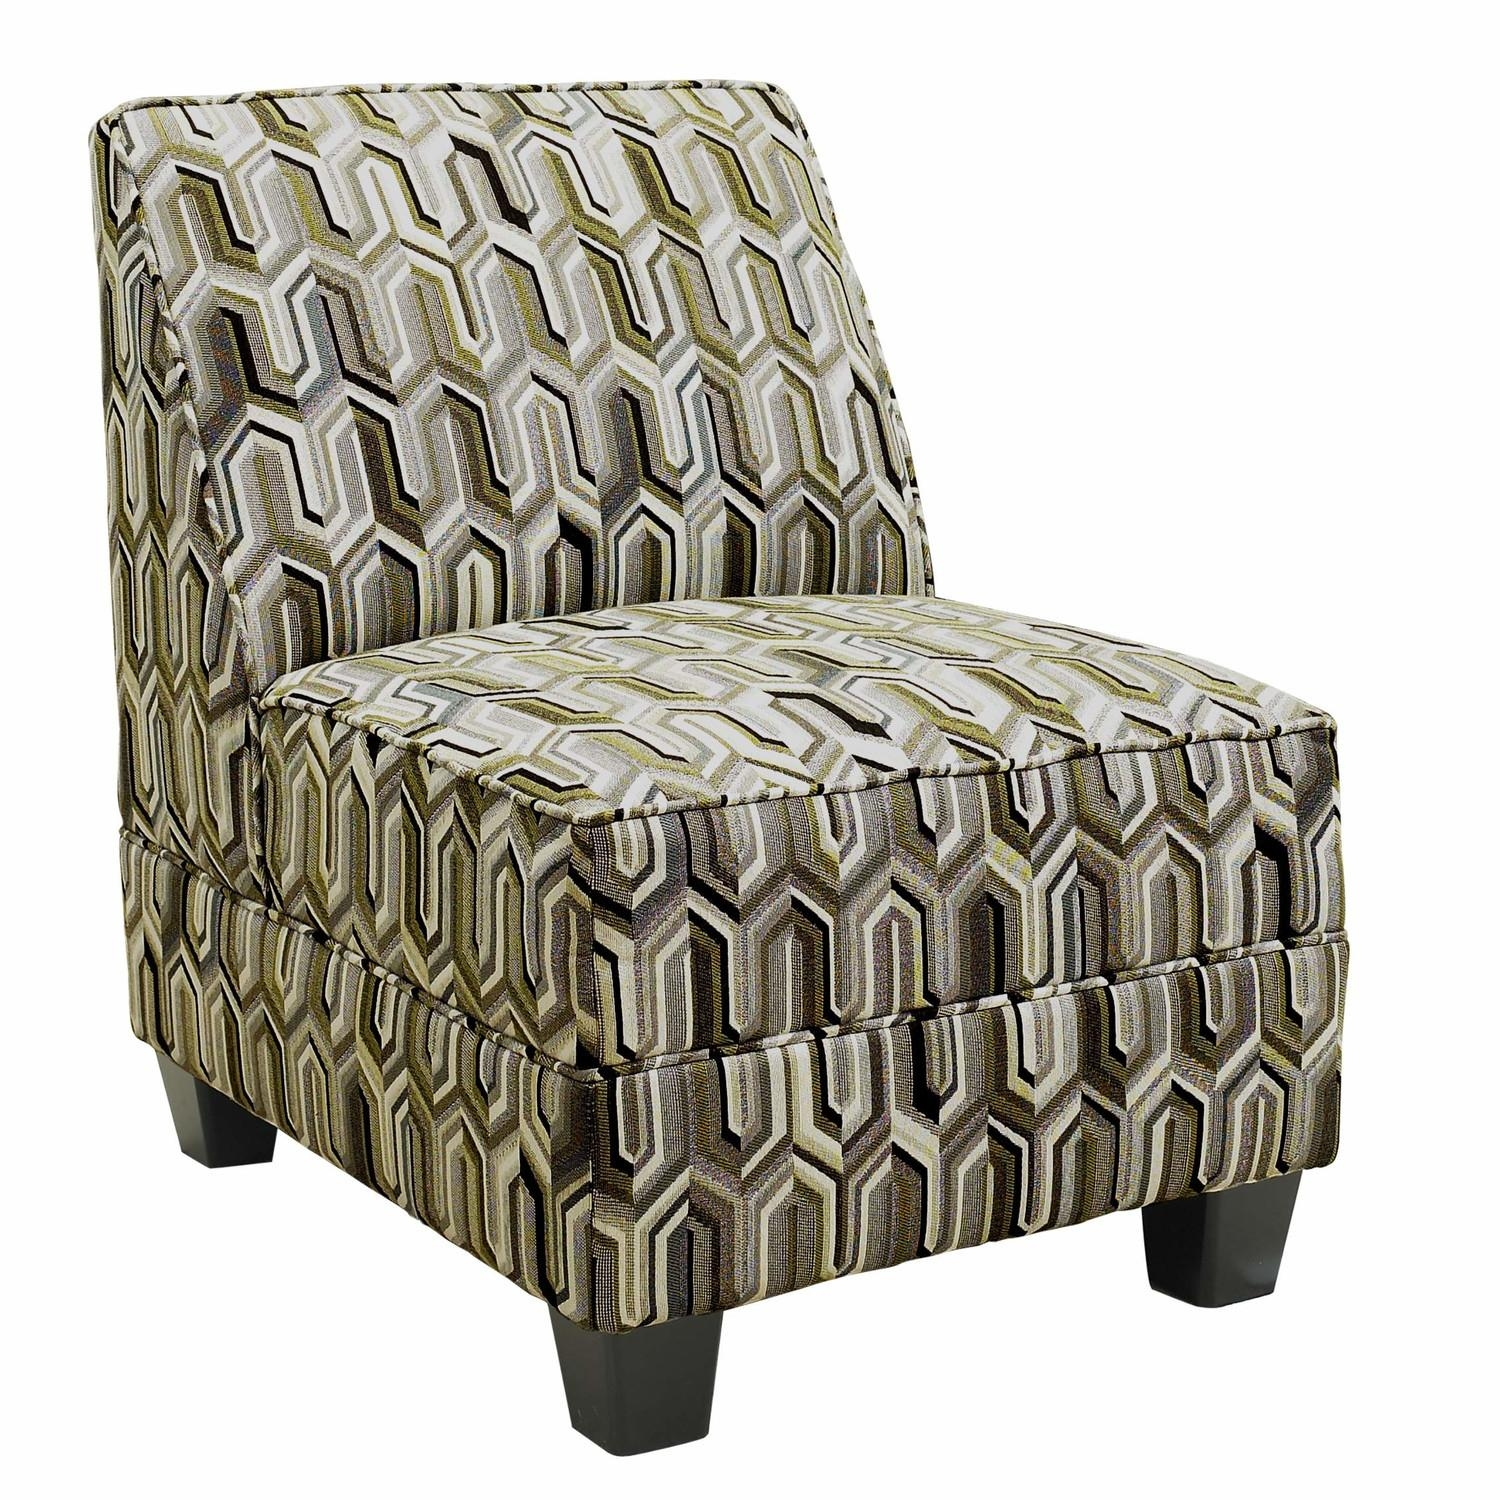 Armless Chair Slipcover.armless Accent Chair Slipcover (Image 2 of 20)